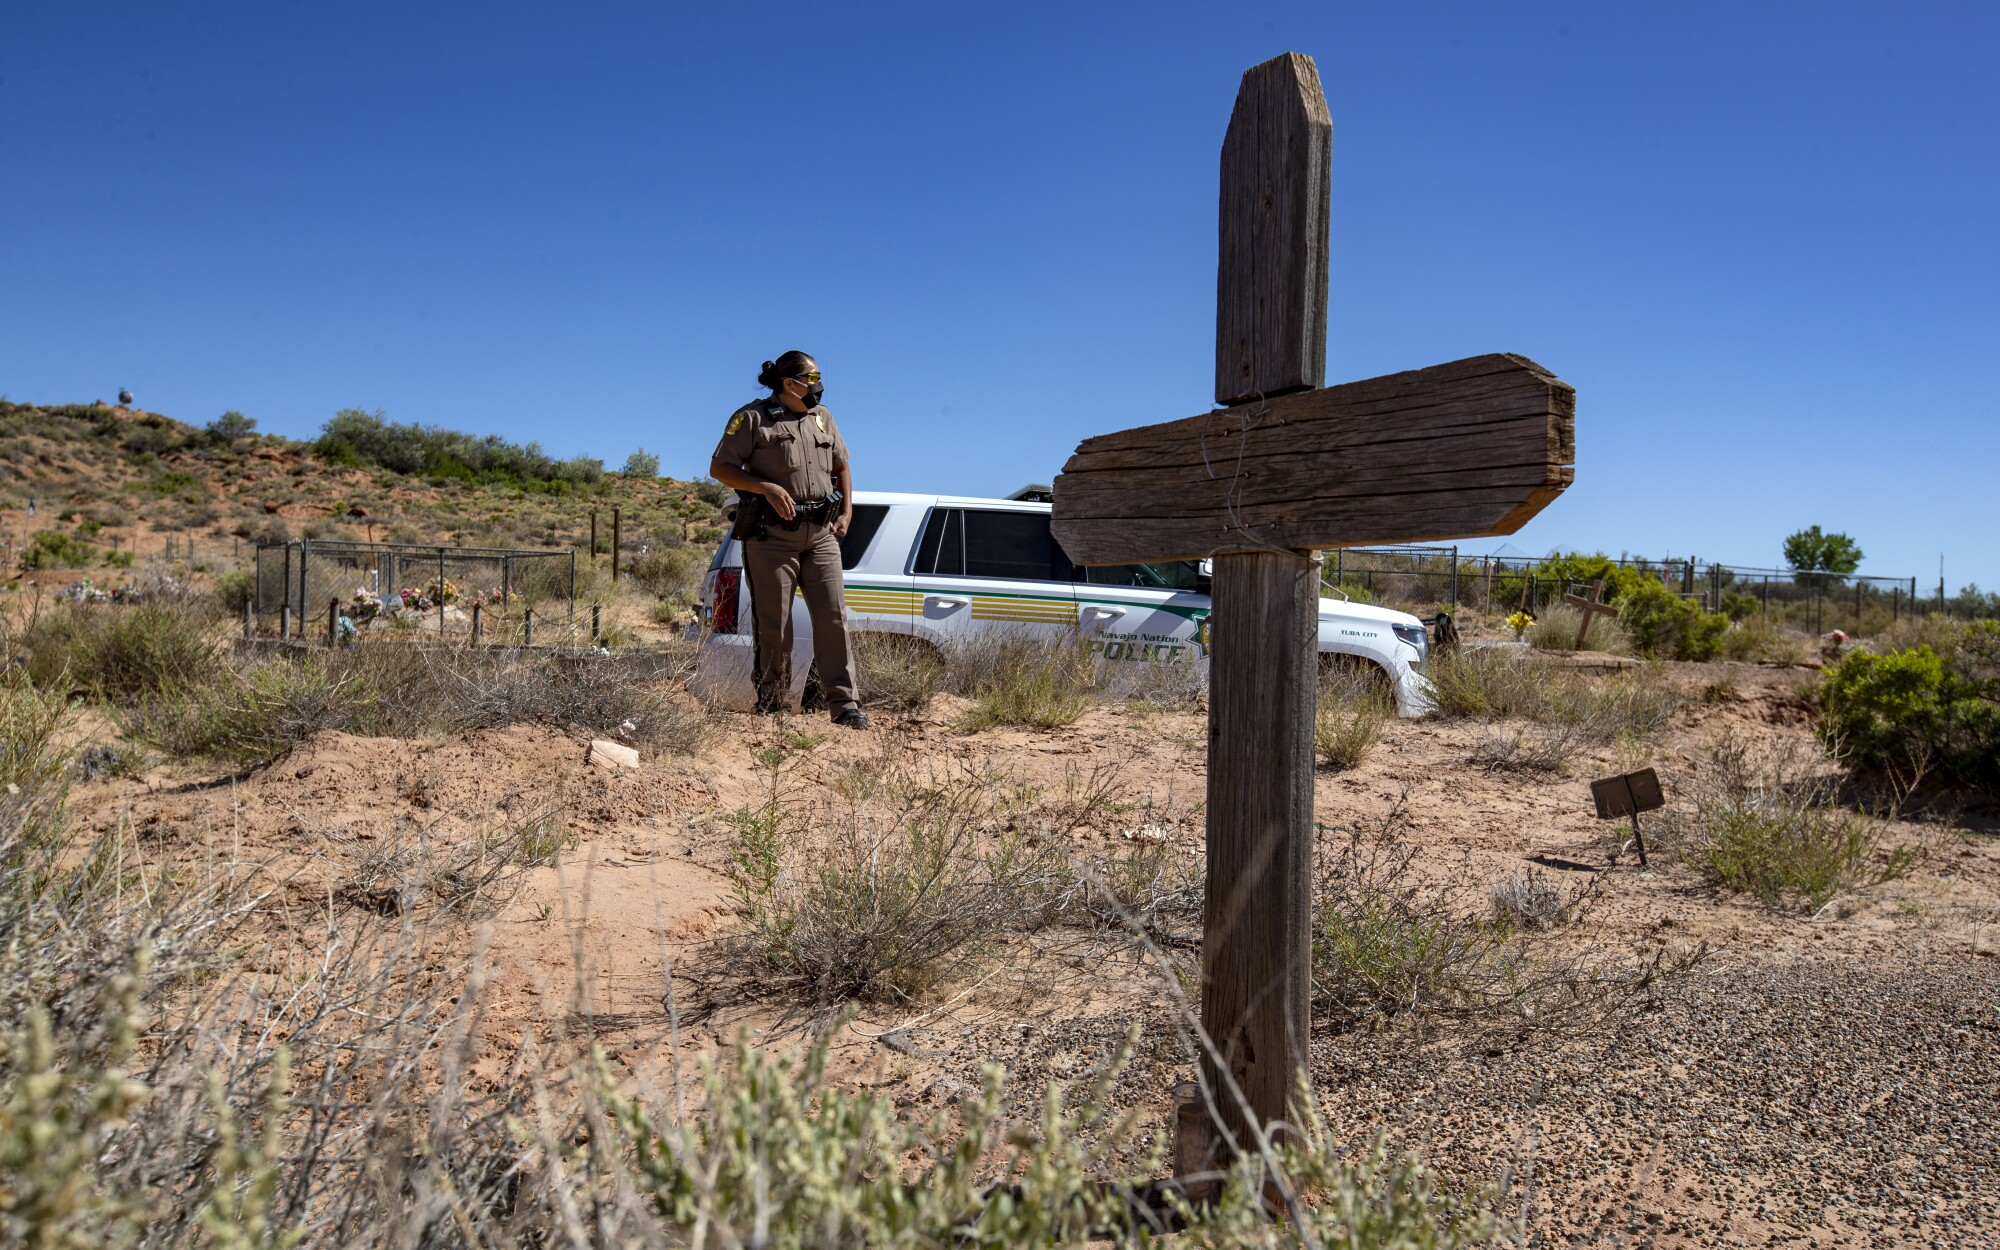 Navajo Nation Police Officer Carolyn Tallsalt looks out at dried sagebrush where her uncle George Billy was buried in April at the Tuba City Community Cemetery in Arizona. (Brian van der Brug / Los Angeles Times)